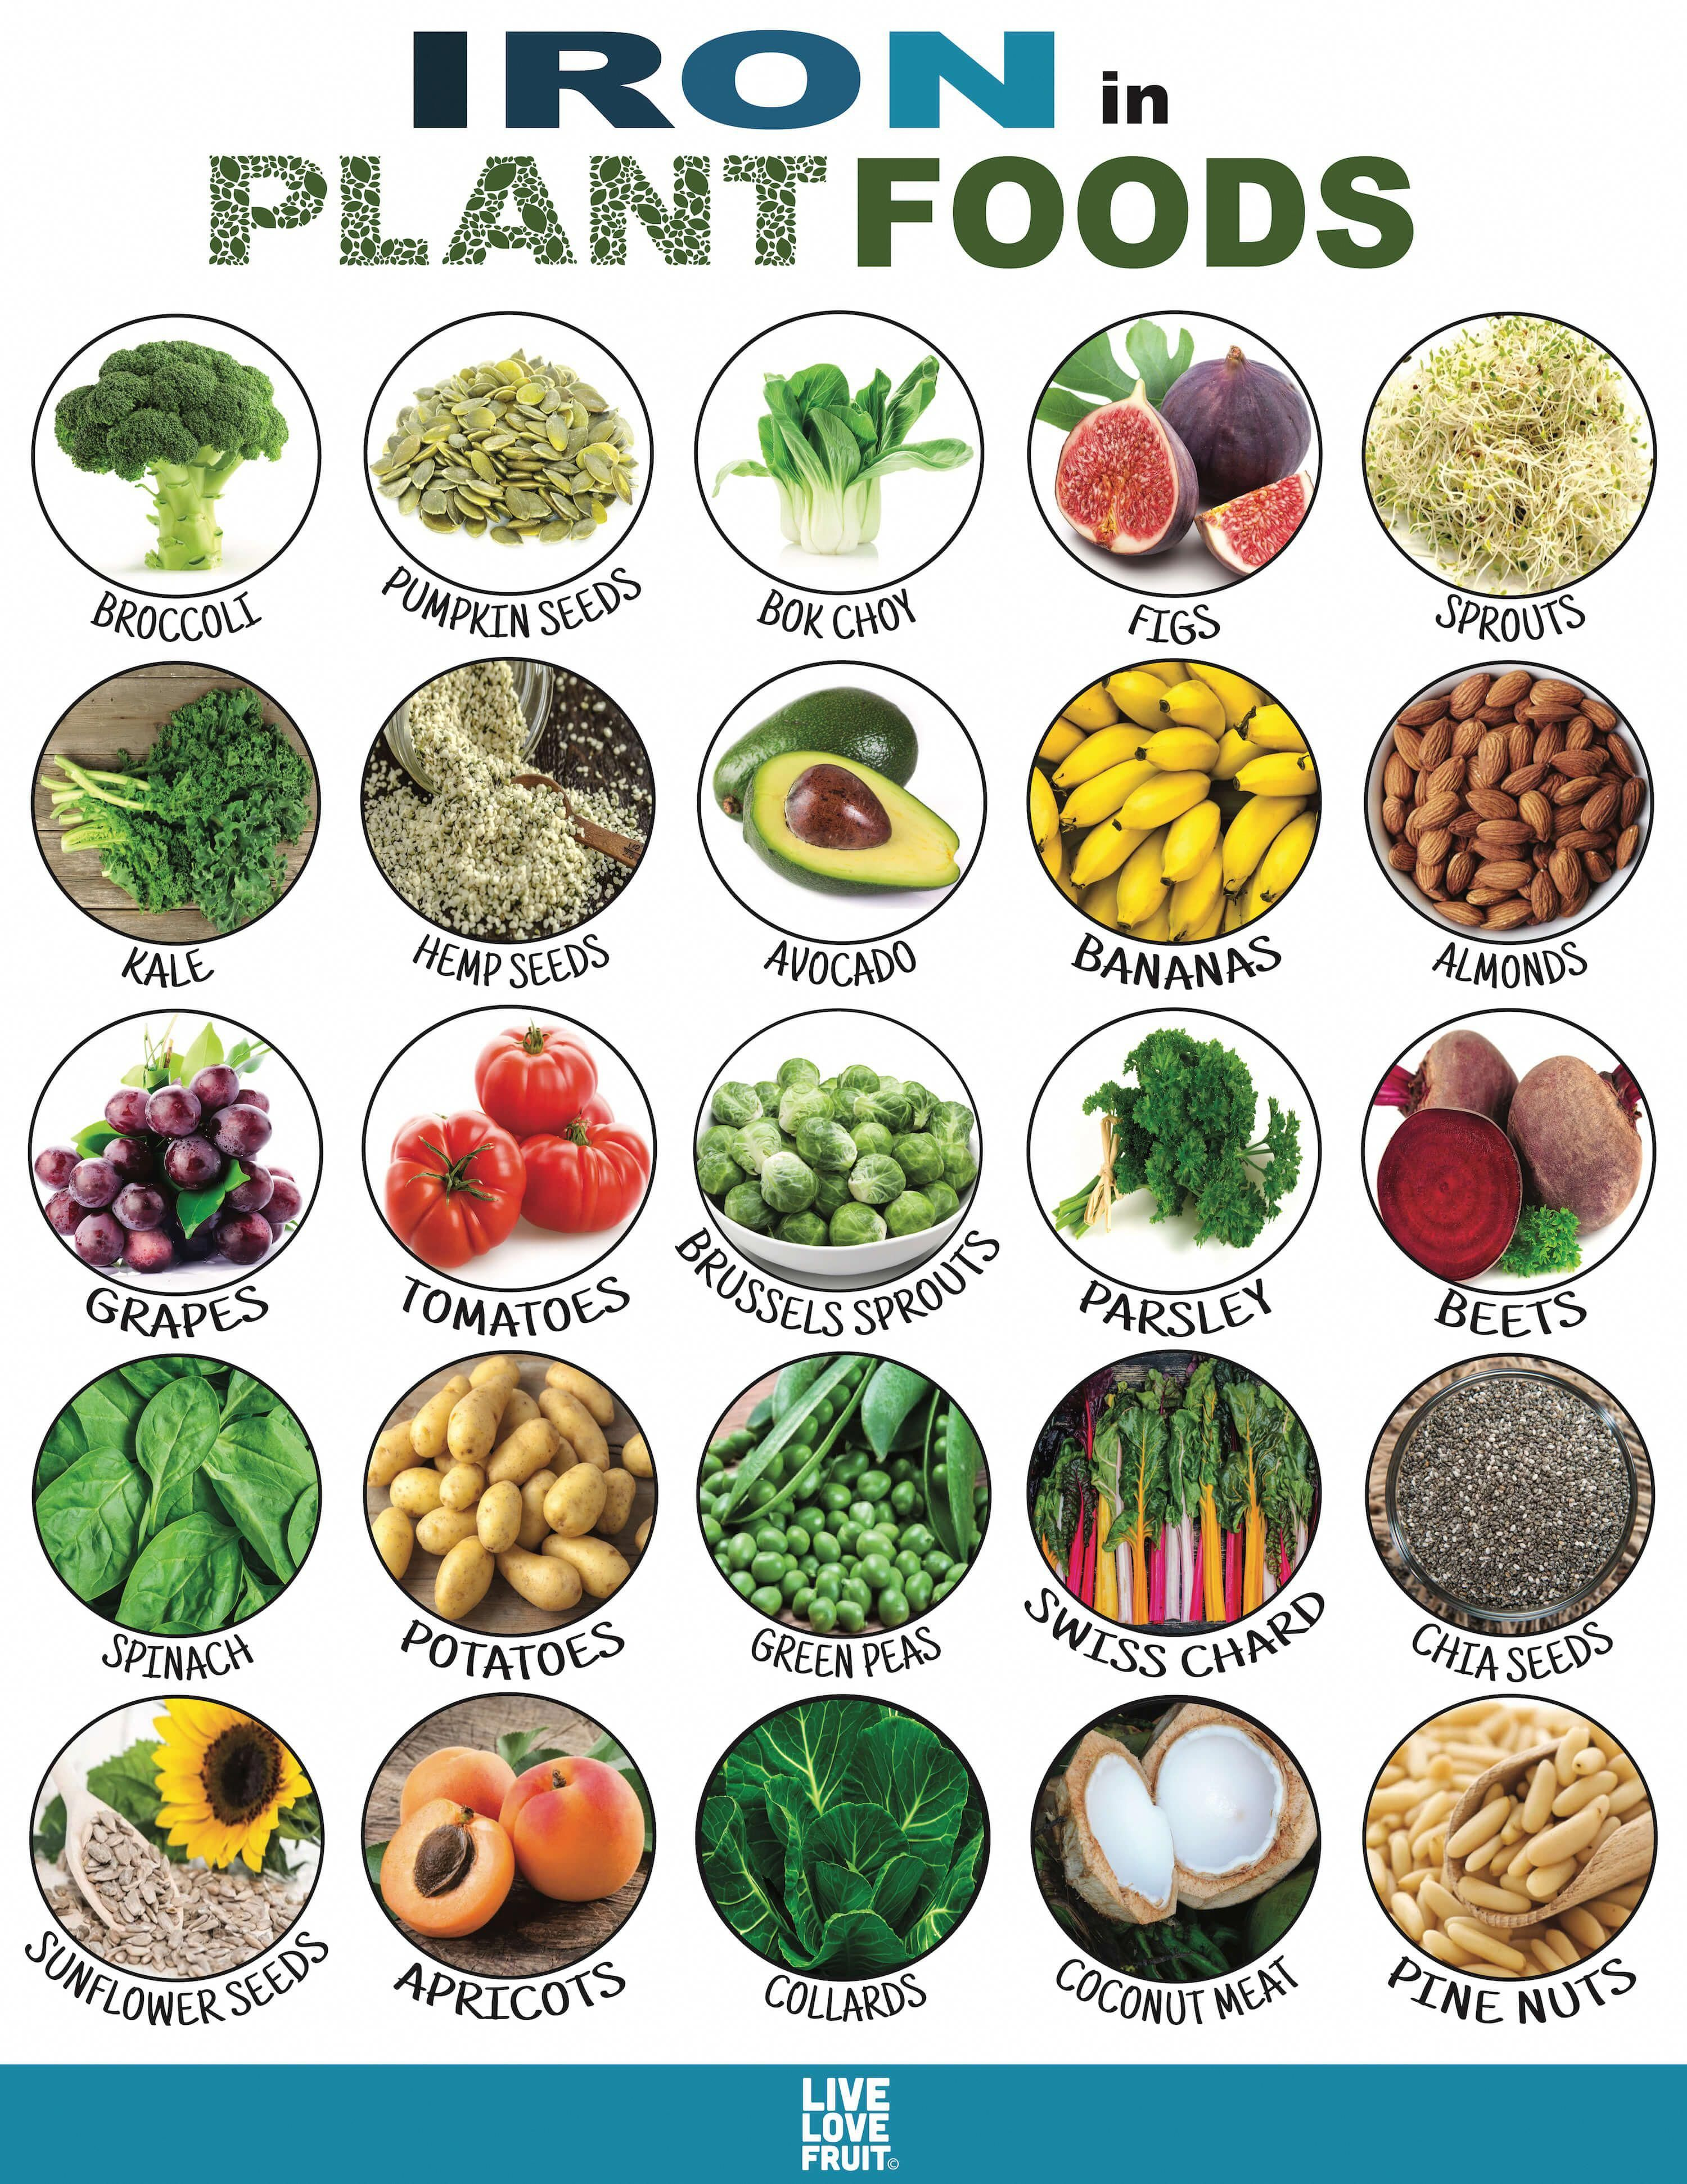 You Can Live Without Meat You can get all the vitamins